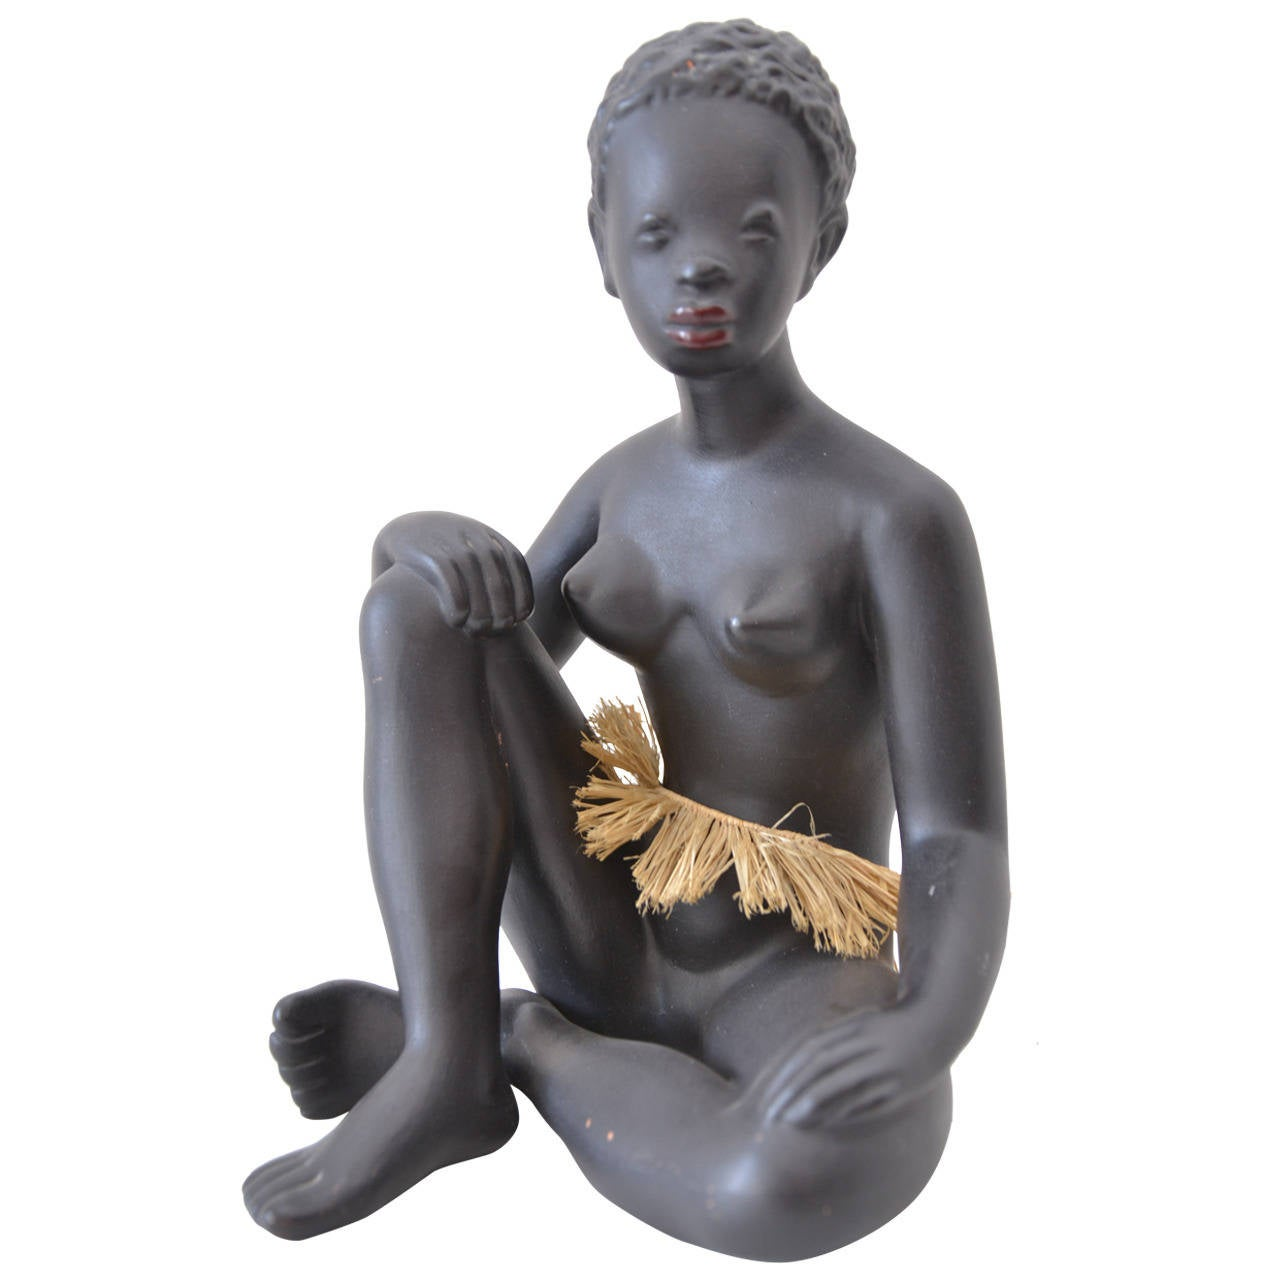 Exotic African Women Sculpture by Leopold Anzengruber, Vienna 1950s 1